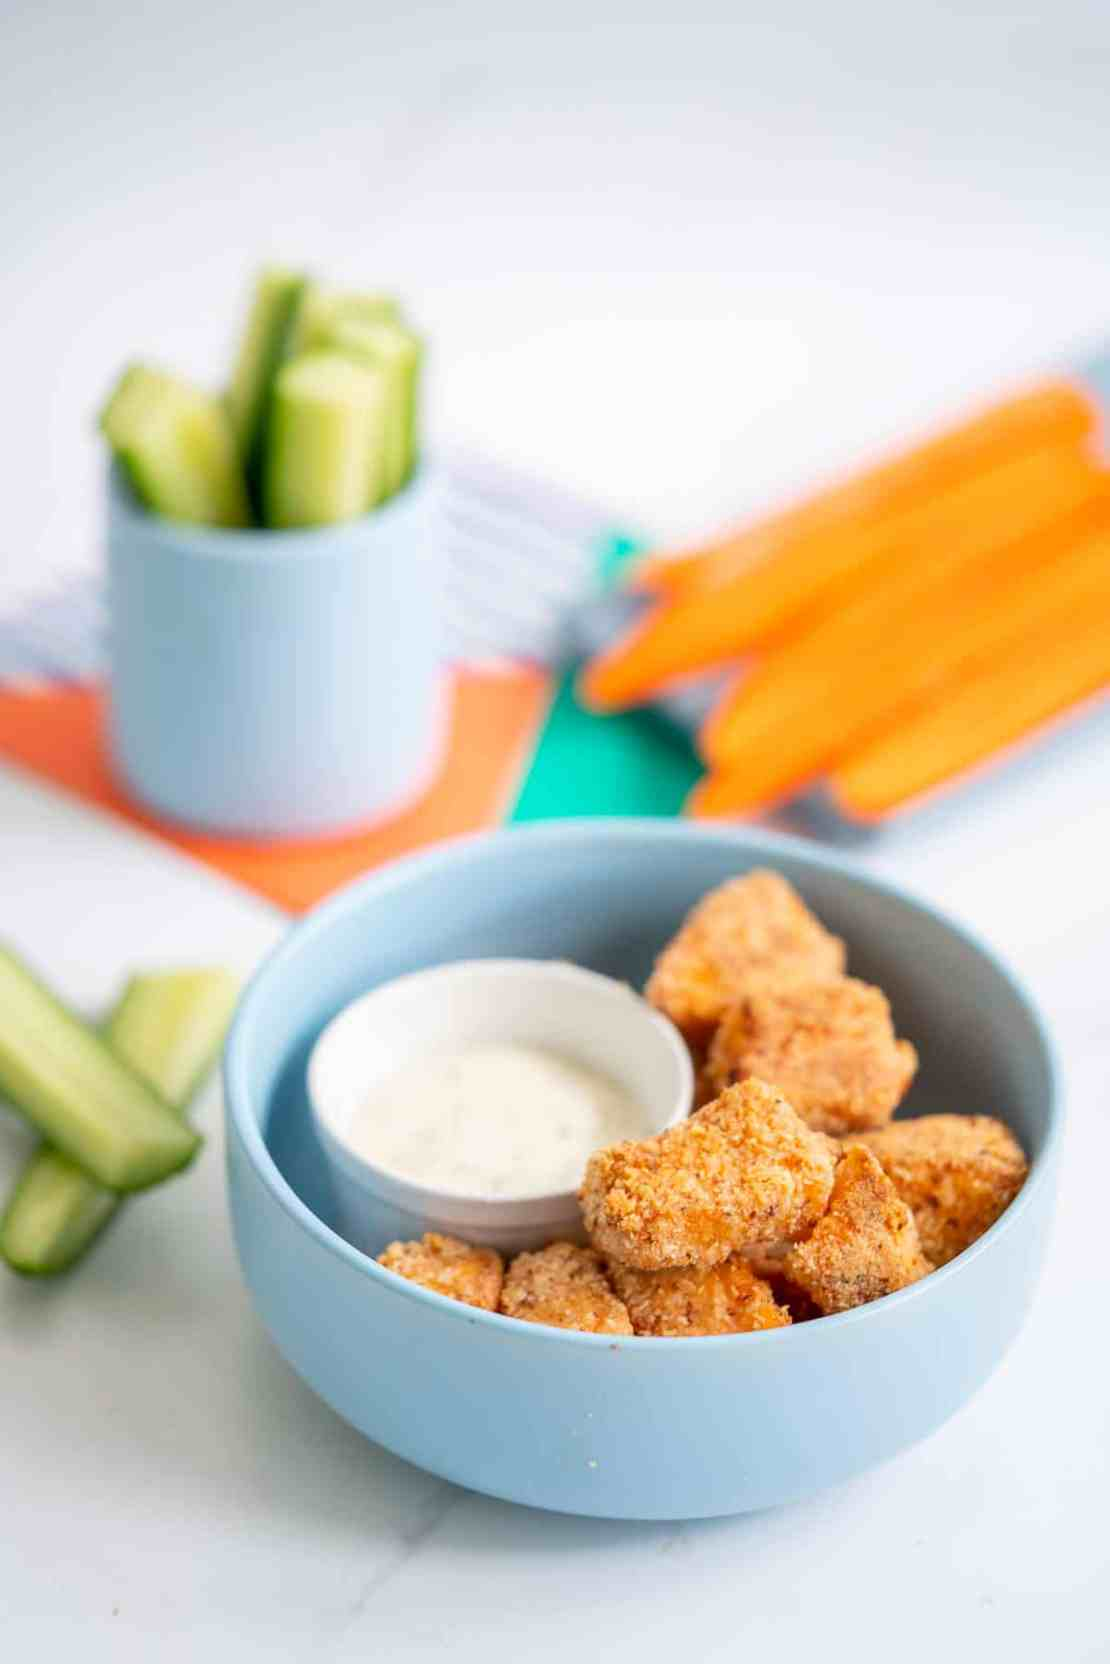 A blue bowl filled with salmon nuggets, cucumber and carrot sticks in the background.